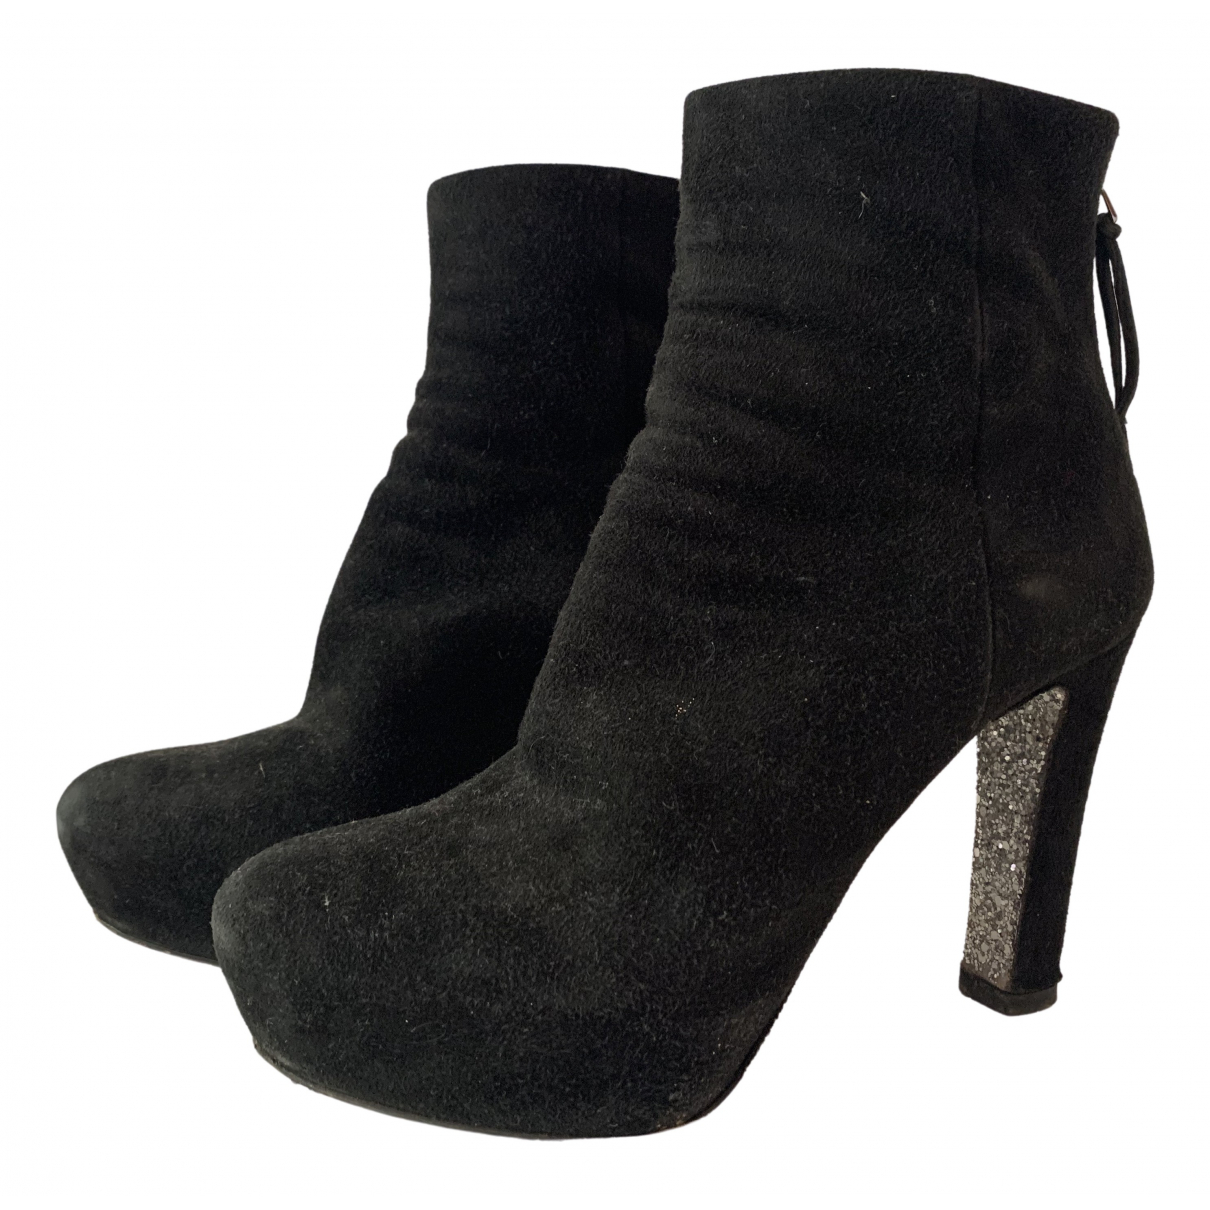 Miu Miu \N Black Suede Ankle boots for Women 37.5 EU